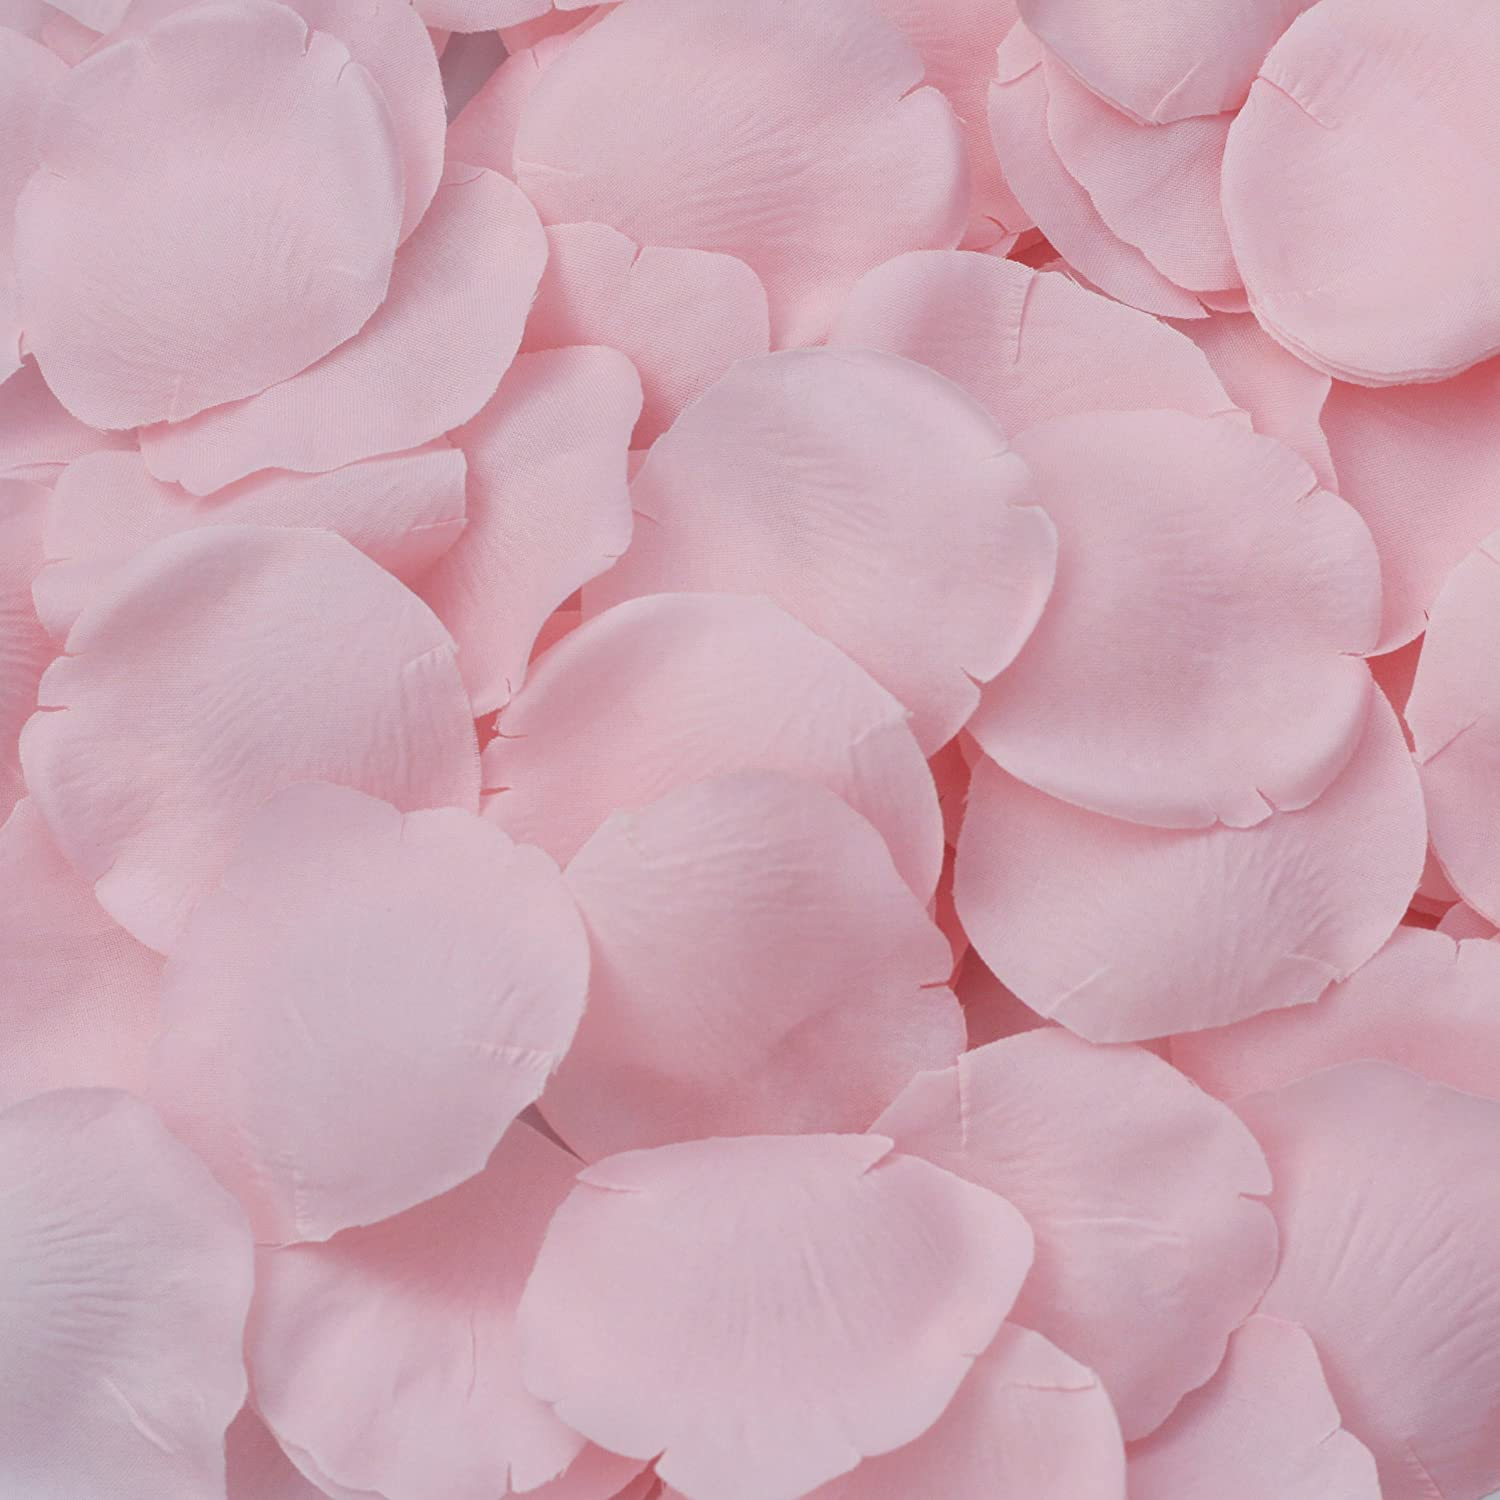 Amazon Pink Silk Rose Petals 200 Petals Wedding Centerpiece